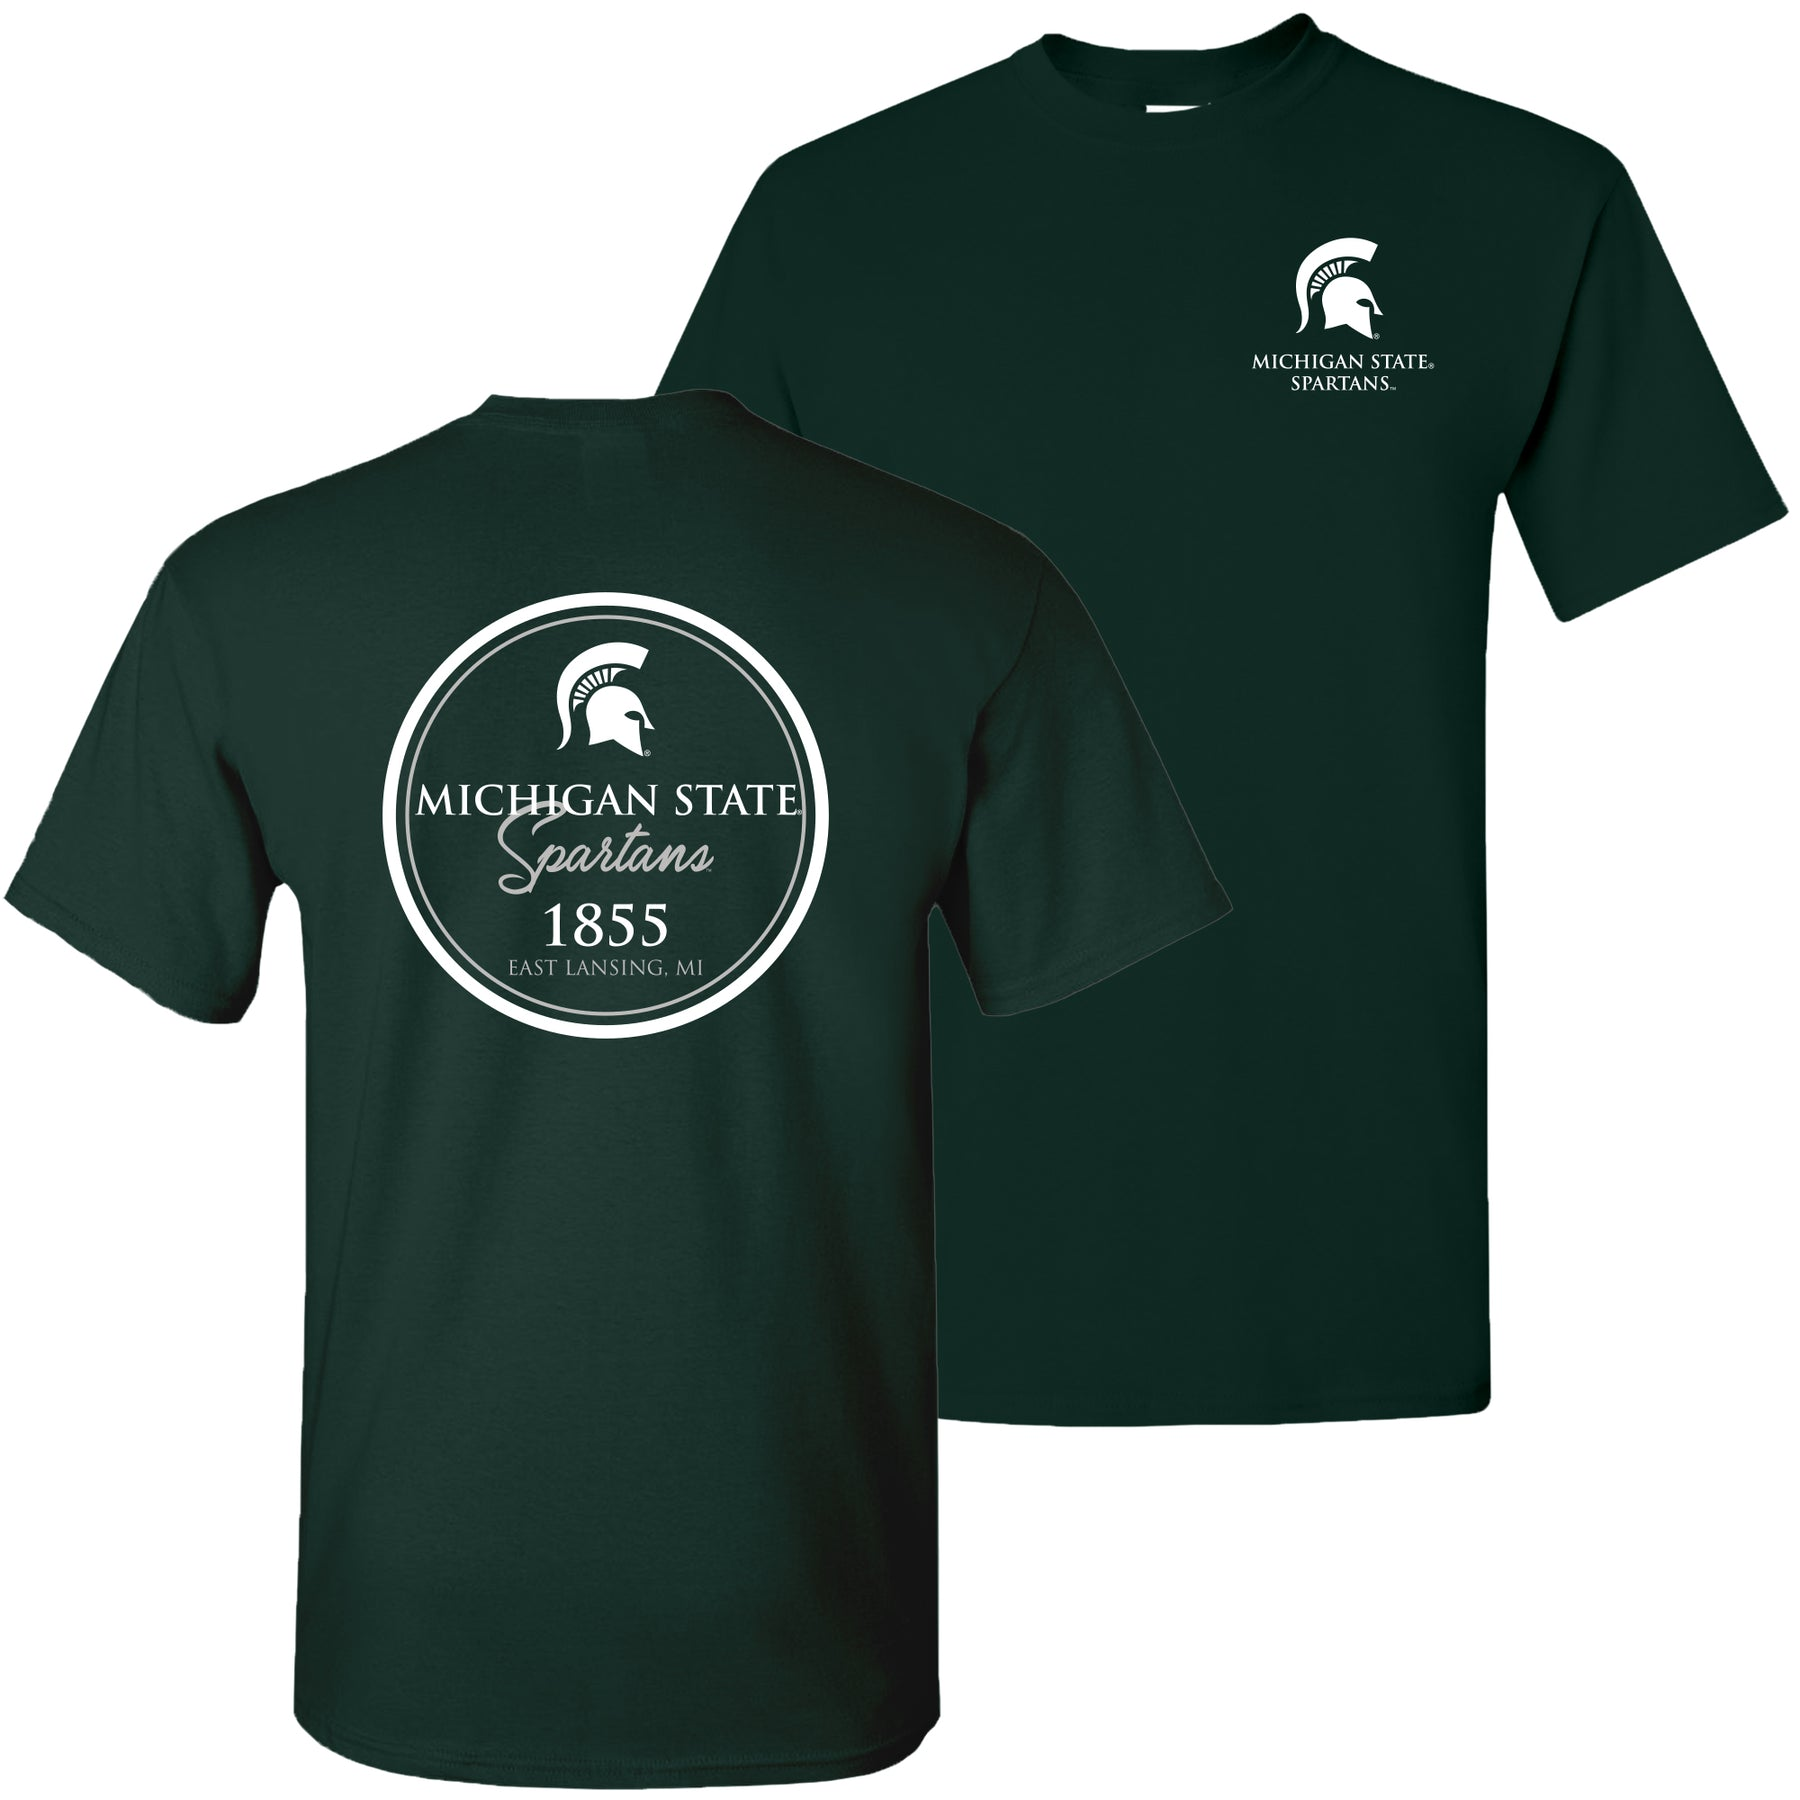 super popular 10cd6 97e8e Michigan State University Spartans Classic Circle Short Sleeve T Shirt -  Forest